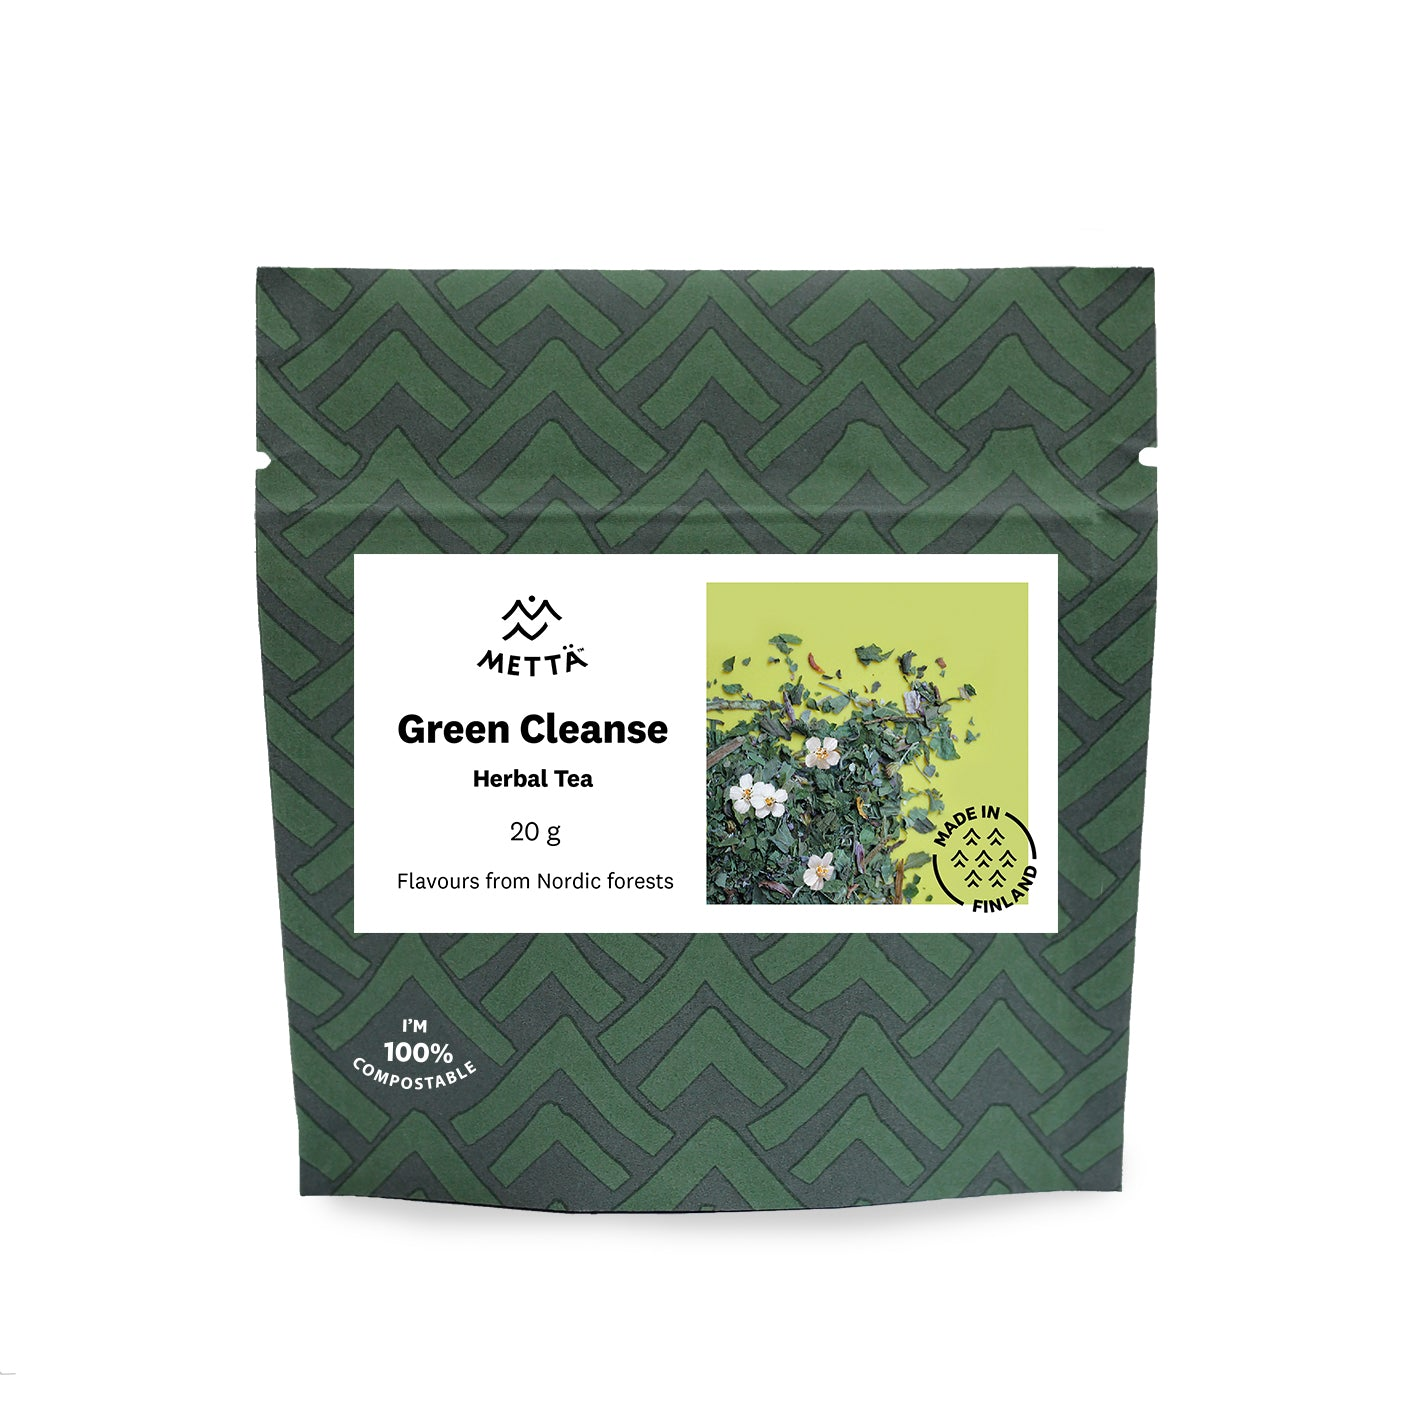 Green Cleanse Herbal Tea 20g